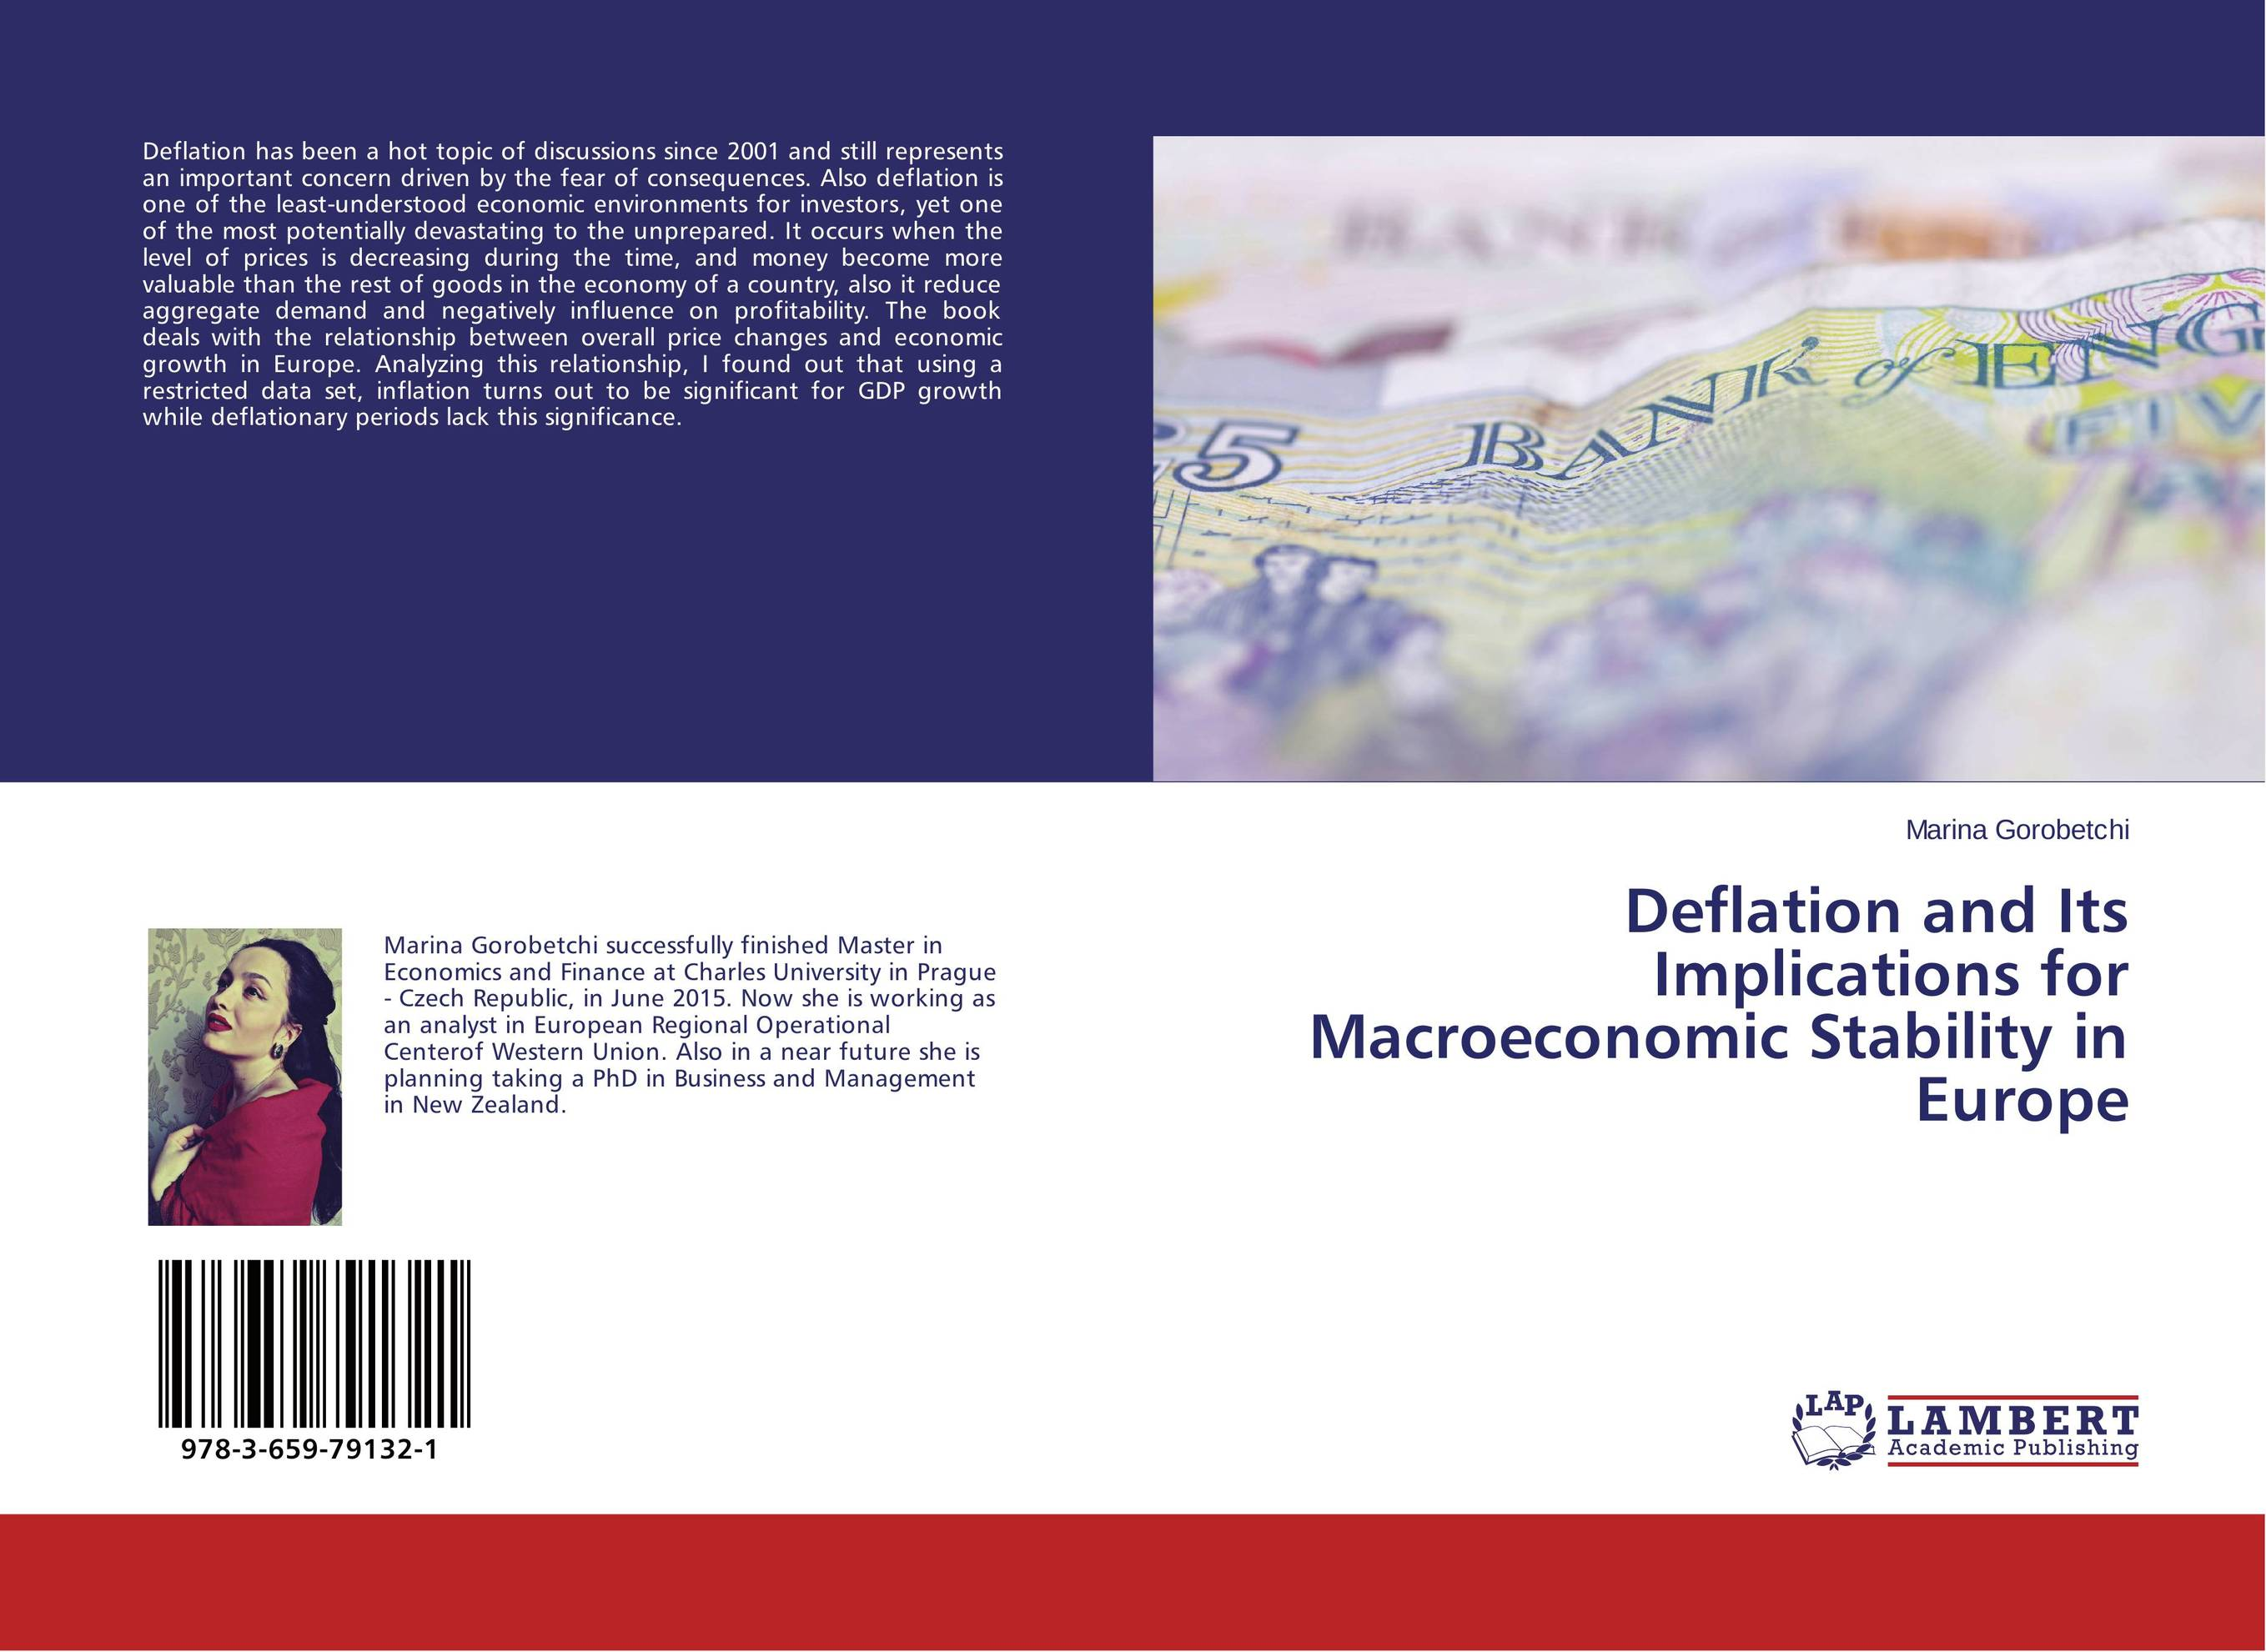 Deflation and Its Implications for Macroeconomic Stability in Europe